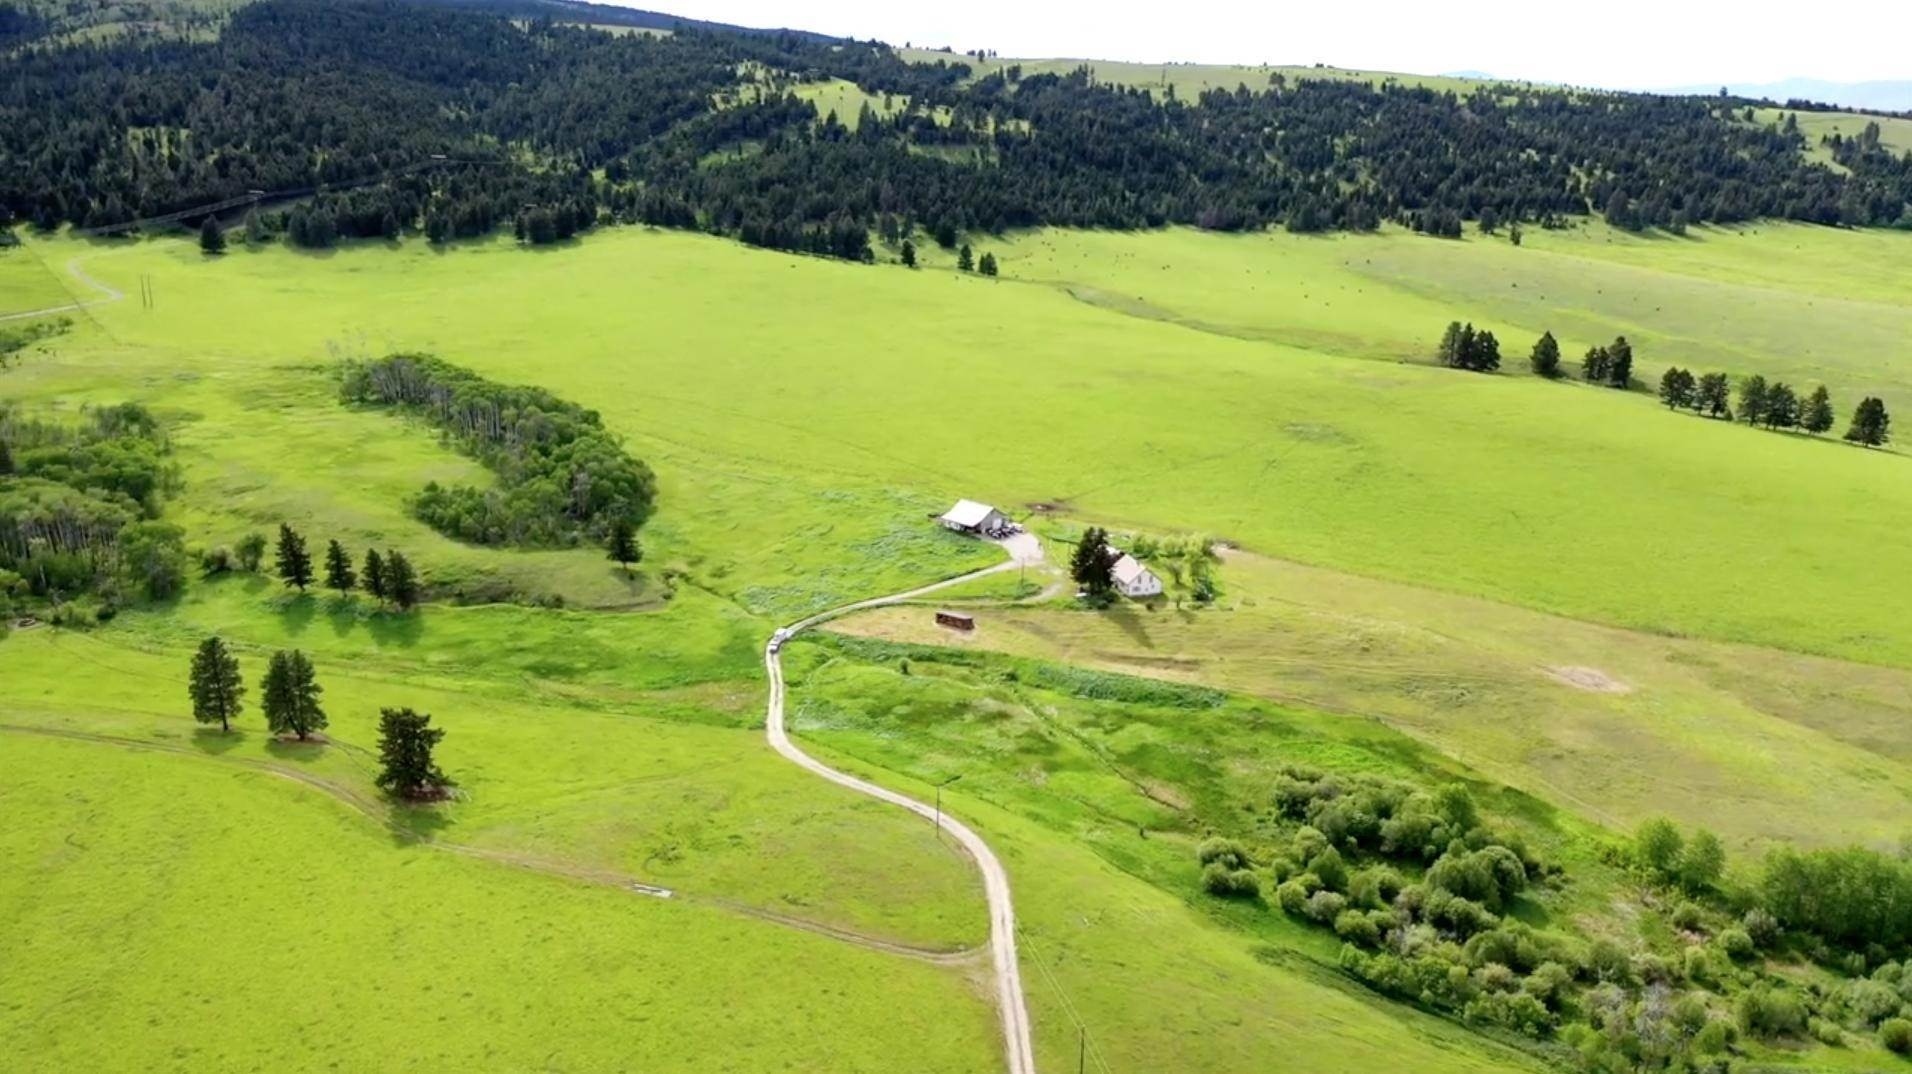 Land for Sale at 2261 South Mullan Trail Road Gold Creek, Montana 59733 United States